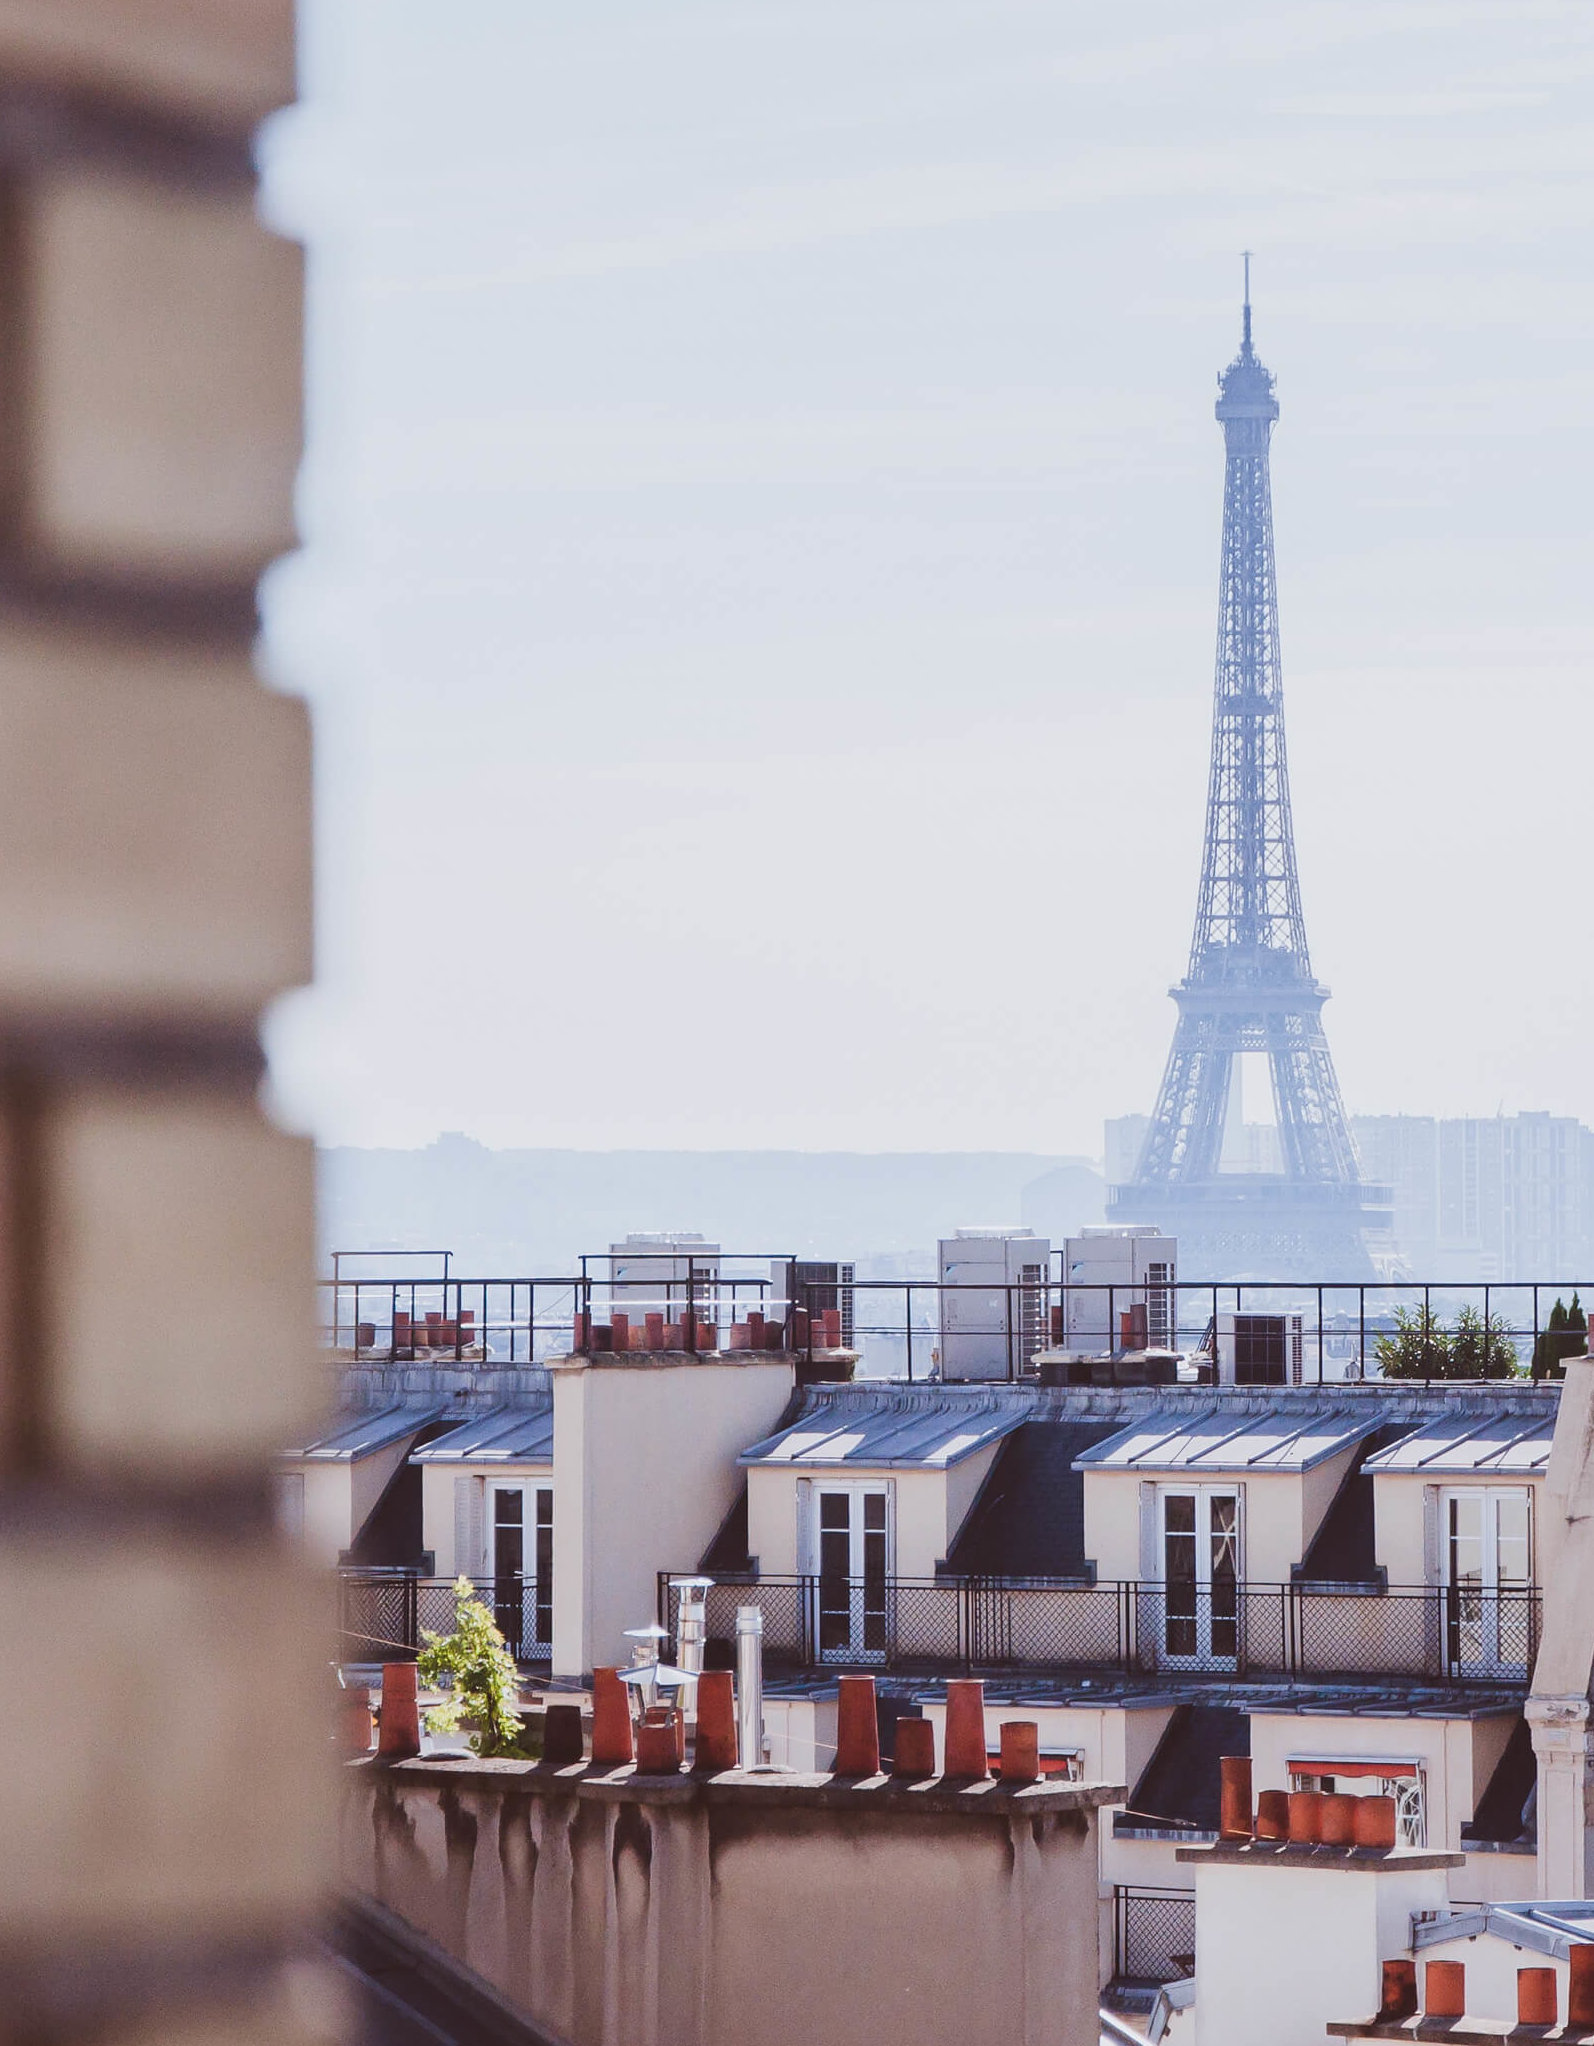 10 THINGS YOU MUST NOT DO IN PARIS